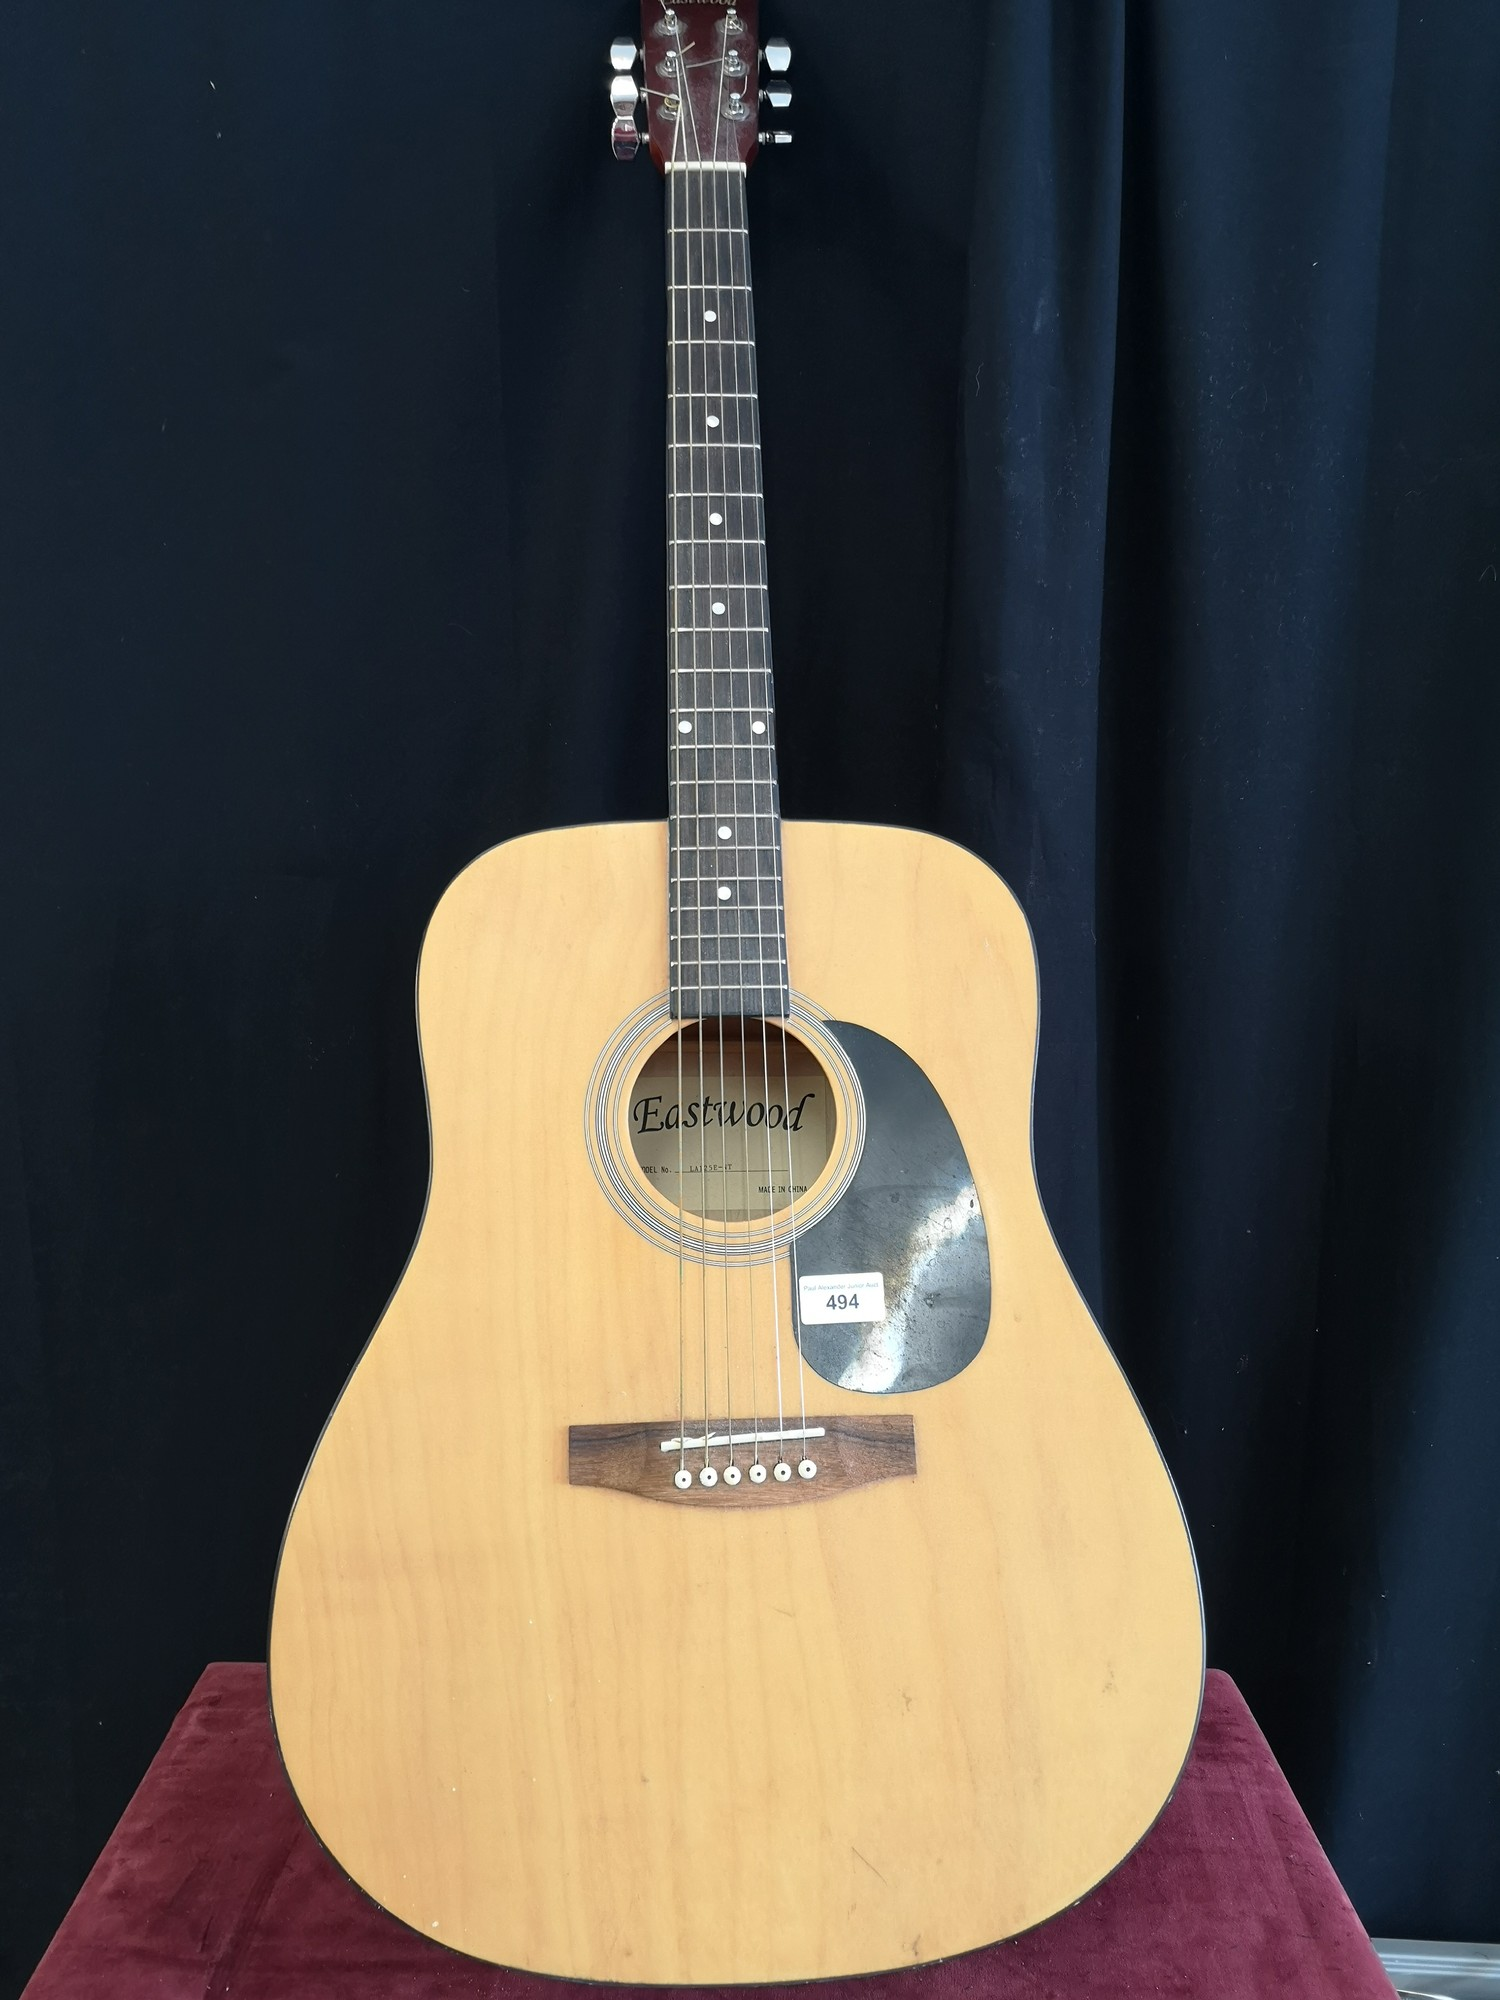 Eastwood acoustic guitar. - Image 2 of 3